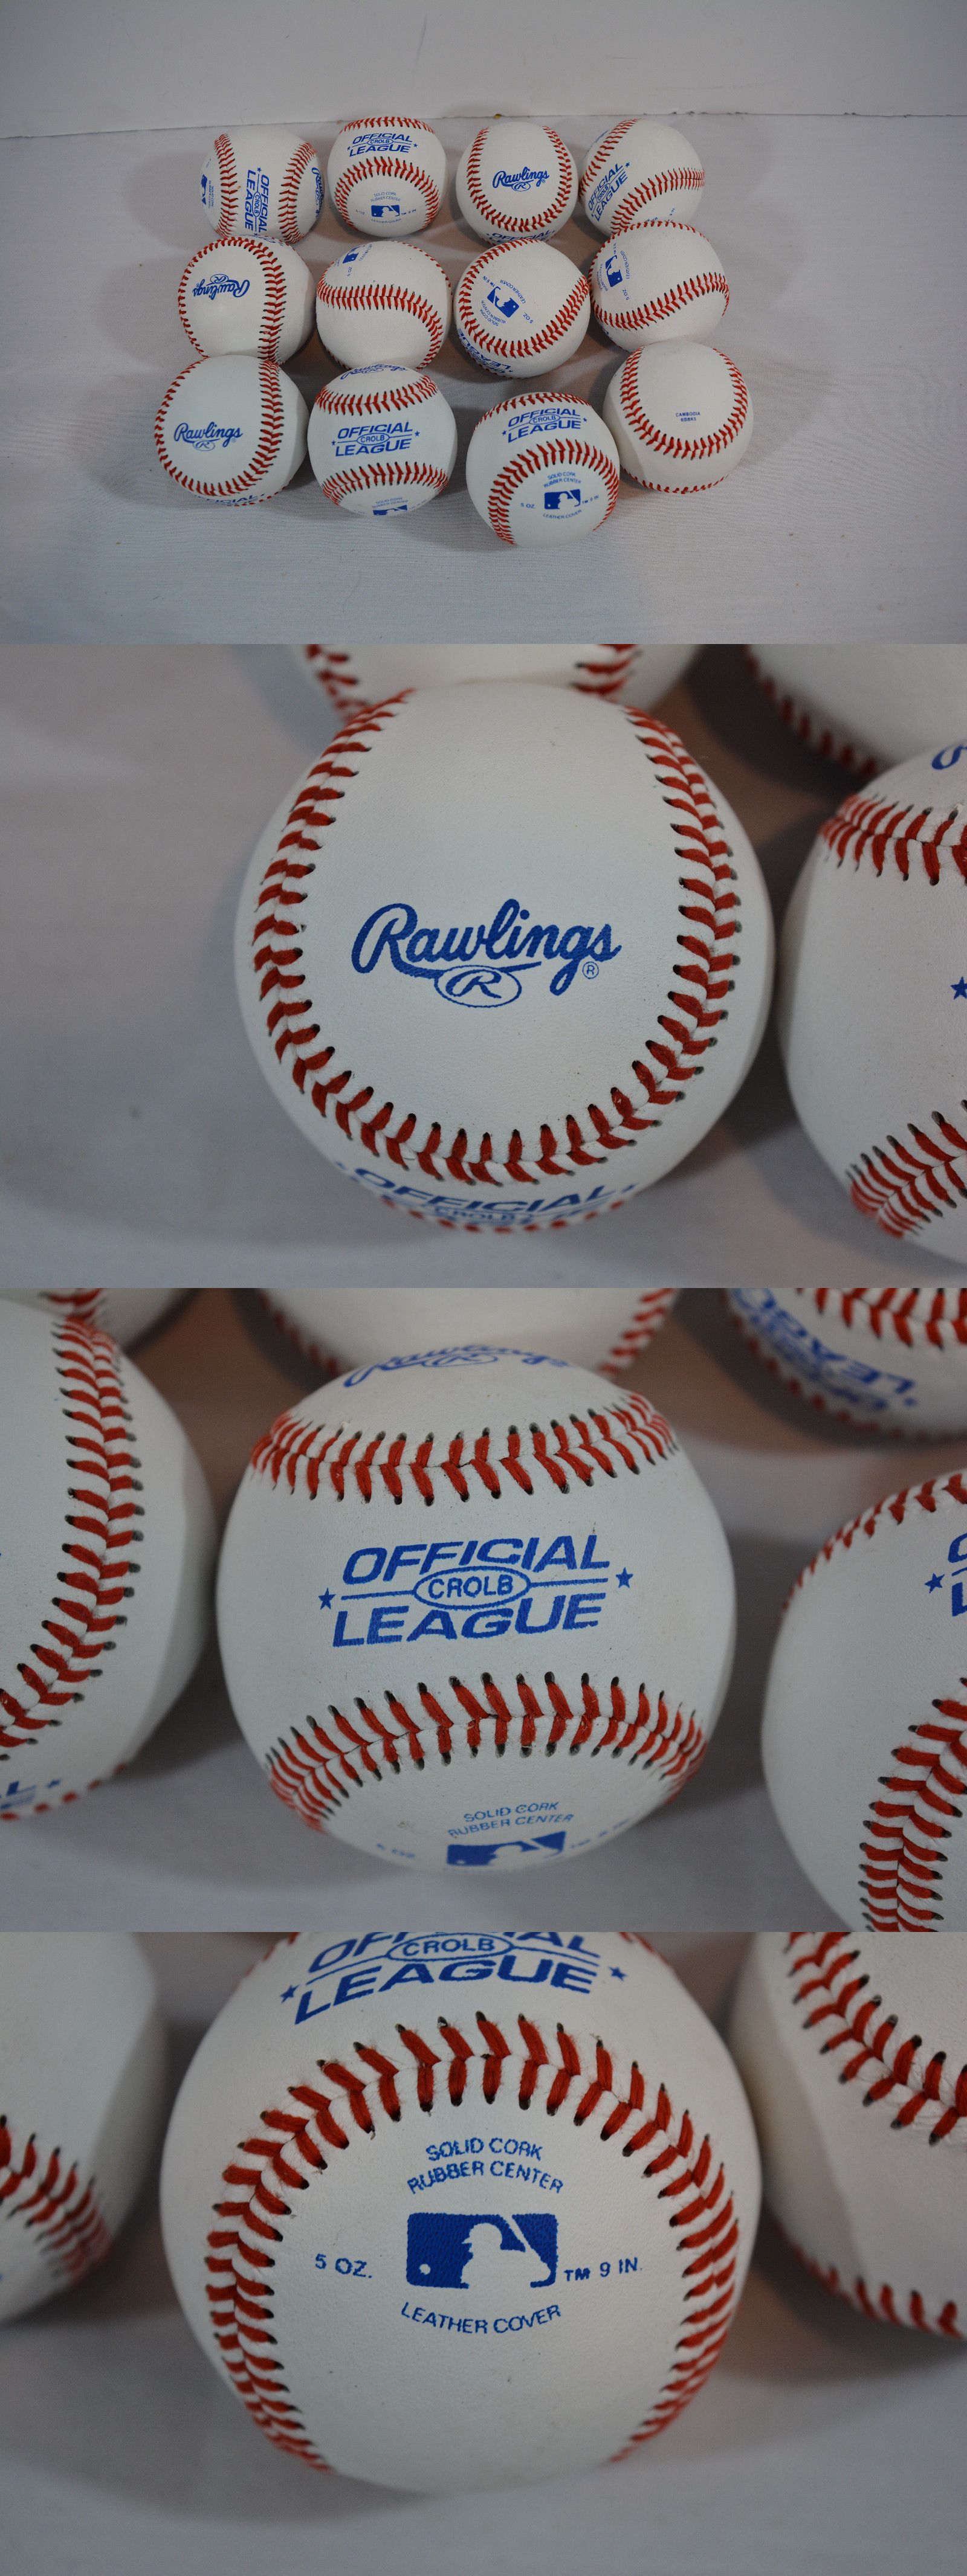 baccd2f1 Balls 181313: New Rawlings Official League Recreational Use Baseballs Pack  Of 12 -> BUY IT NOW ONLY: $16.95 on eBay!